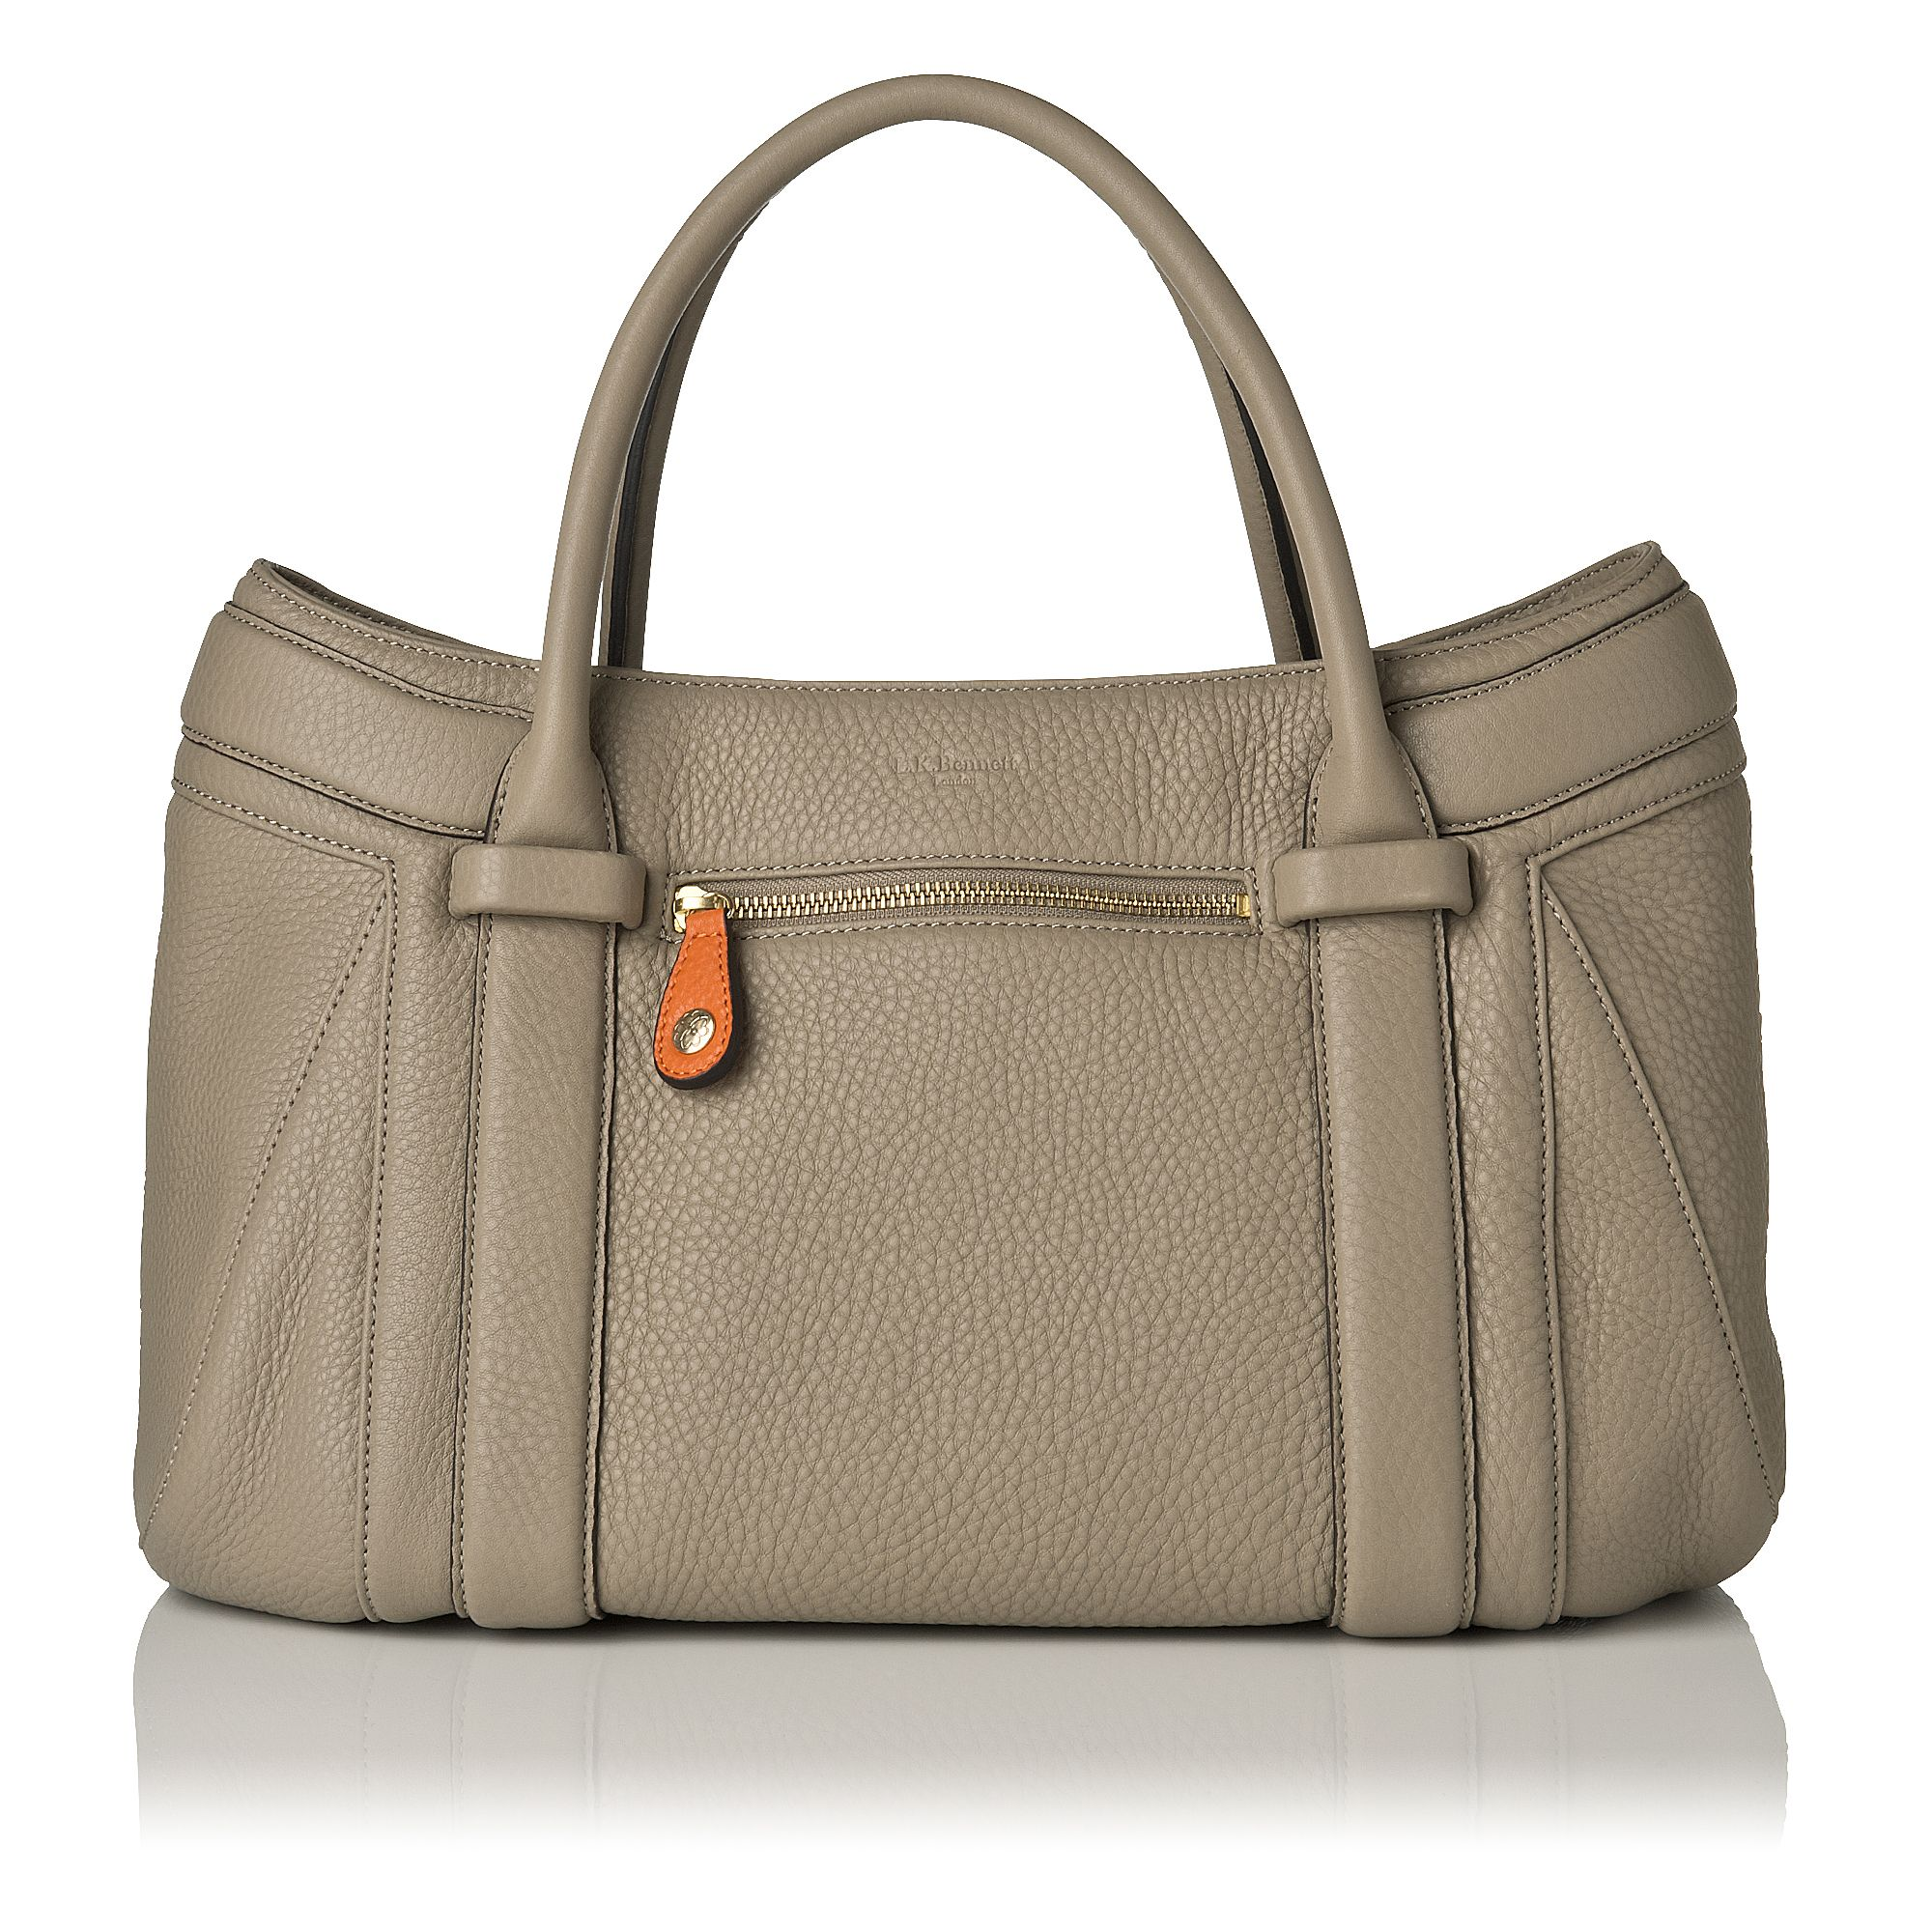 Milly grained leather tote bag